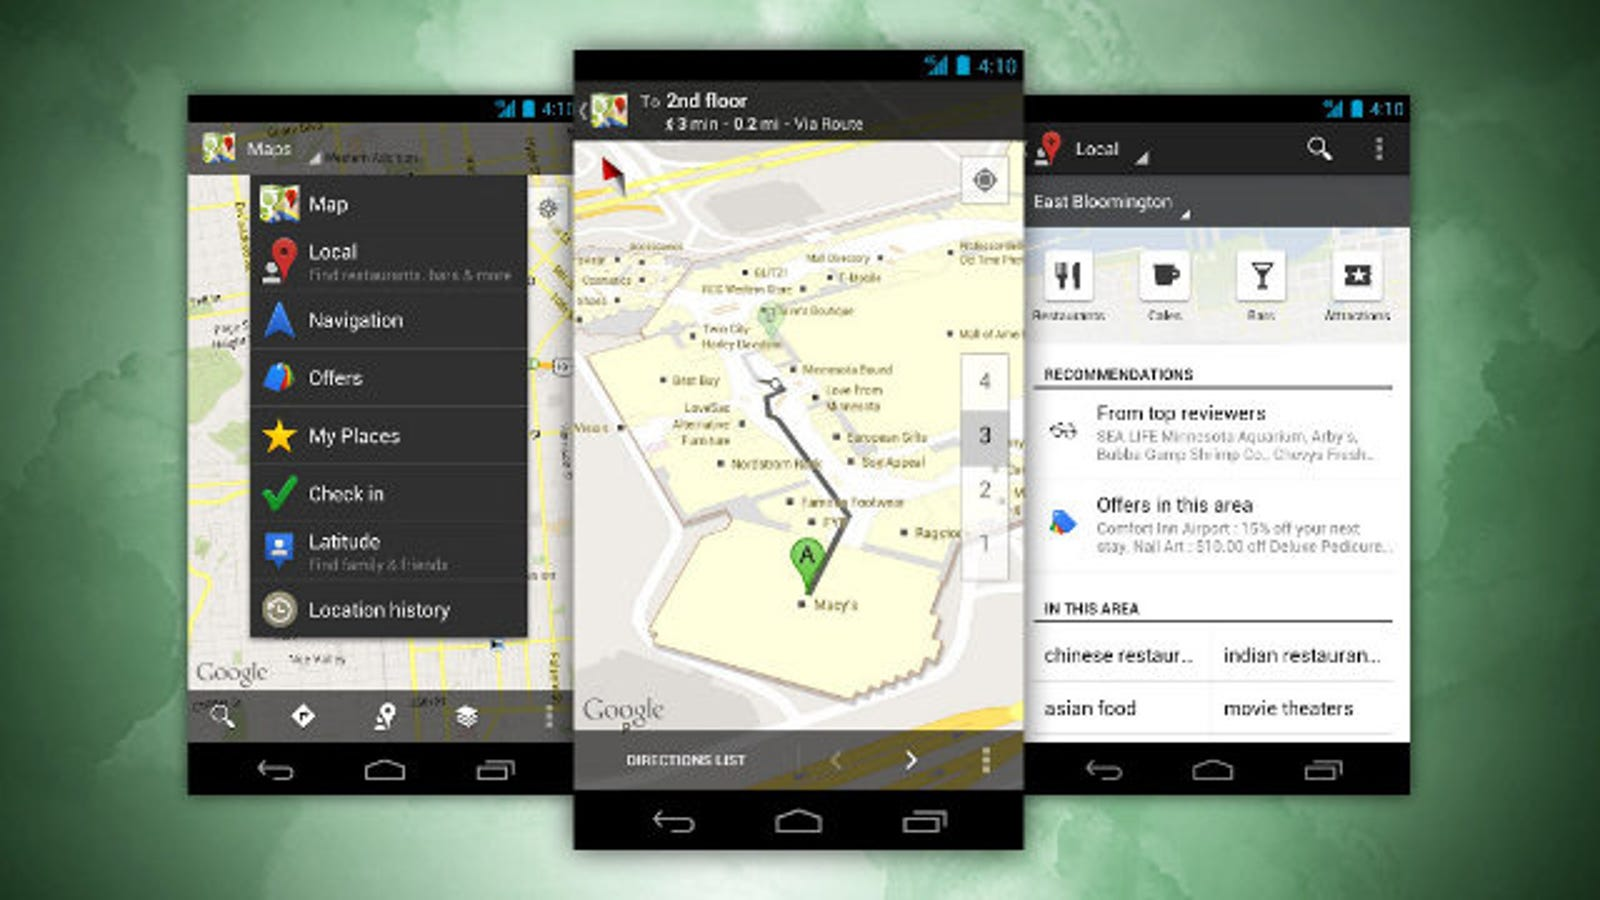 The Best Turn-By-Turn Navigation App for Android